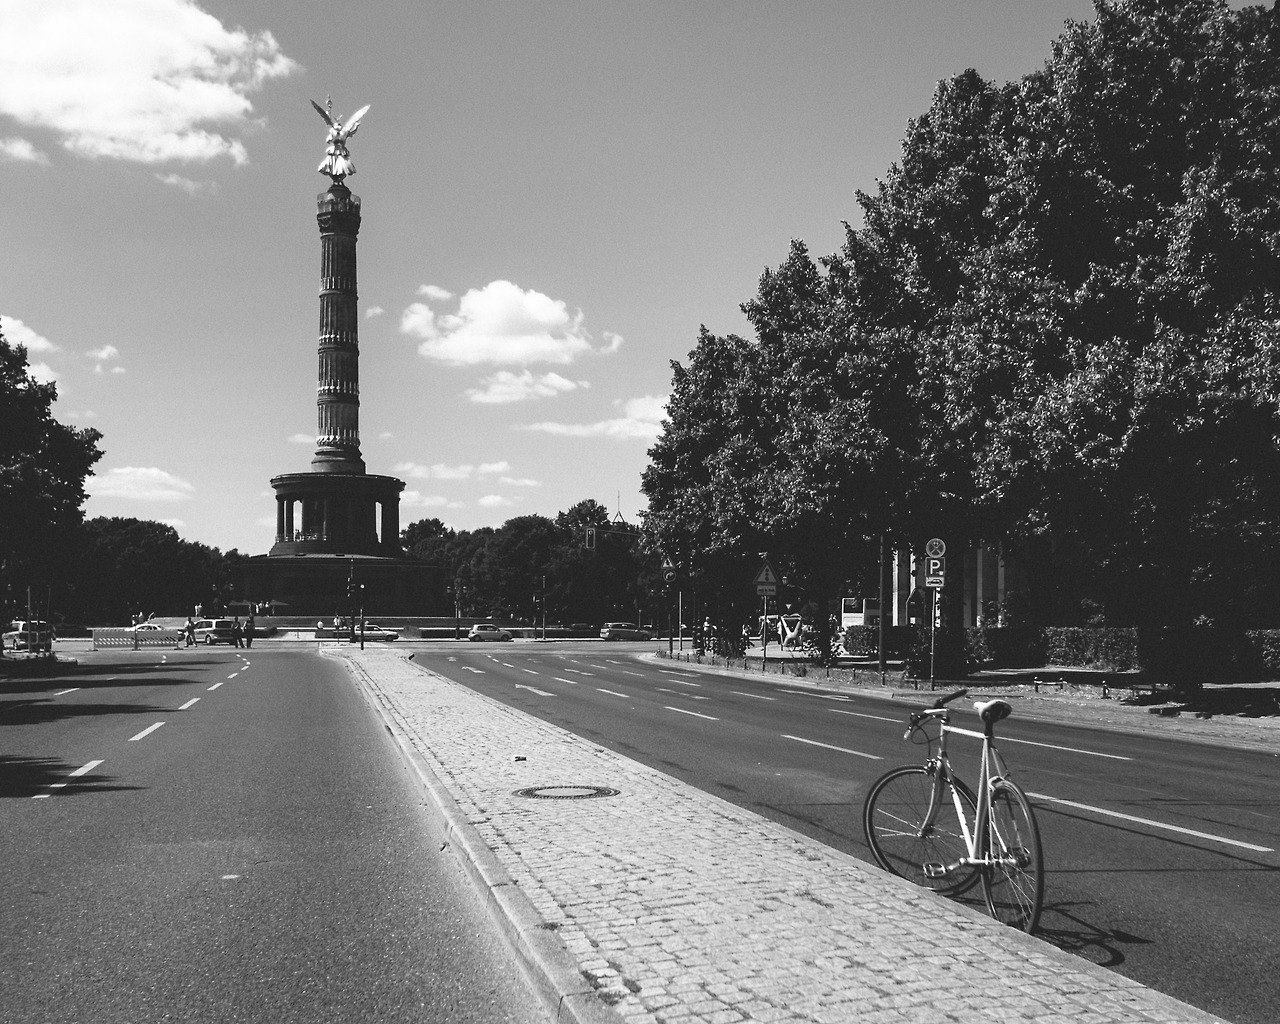 On a Saturday ride through Tiergarten